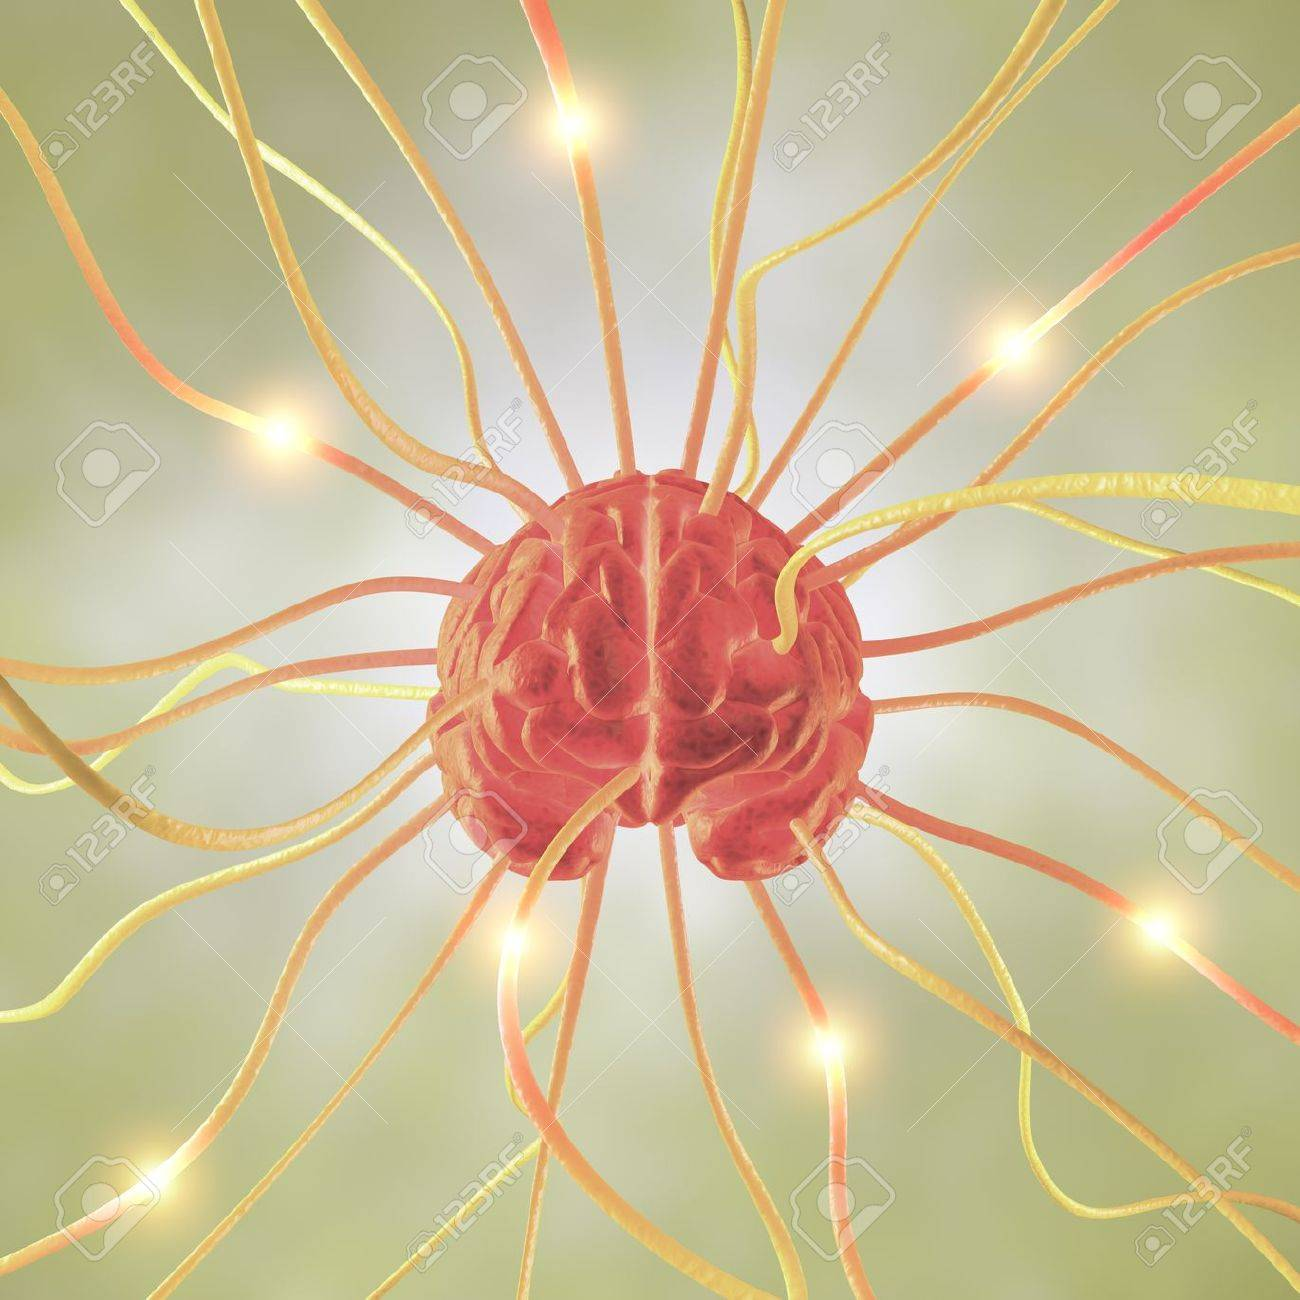 Ramifications brain, concept of the human brain system. Stock Photo - 10803478